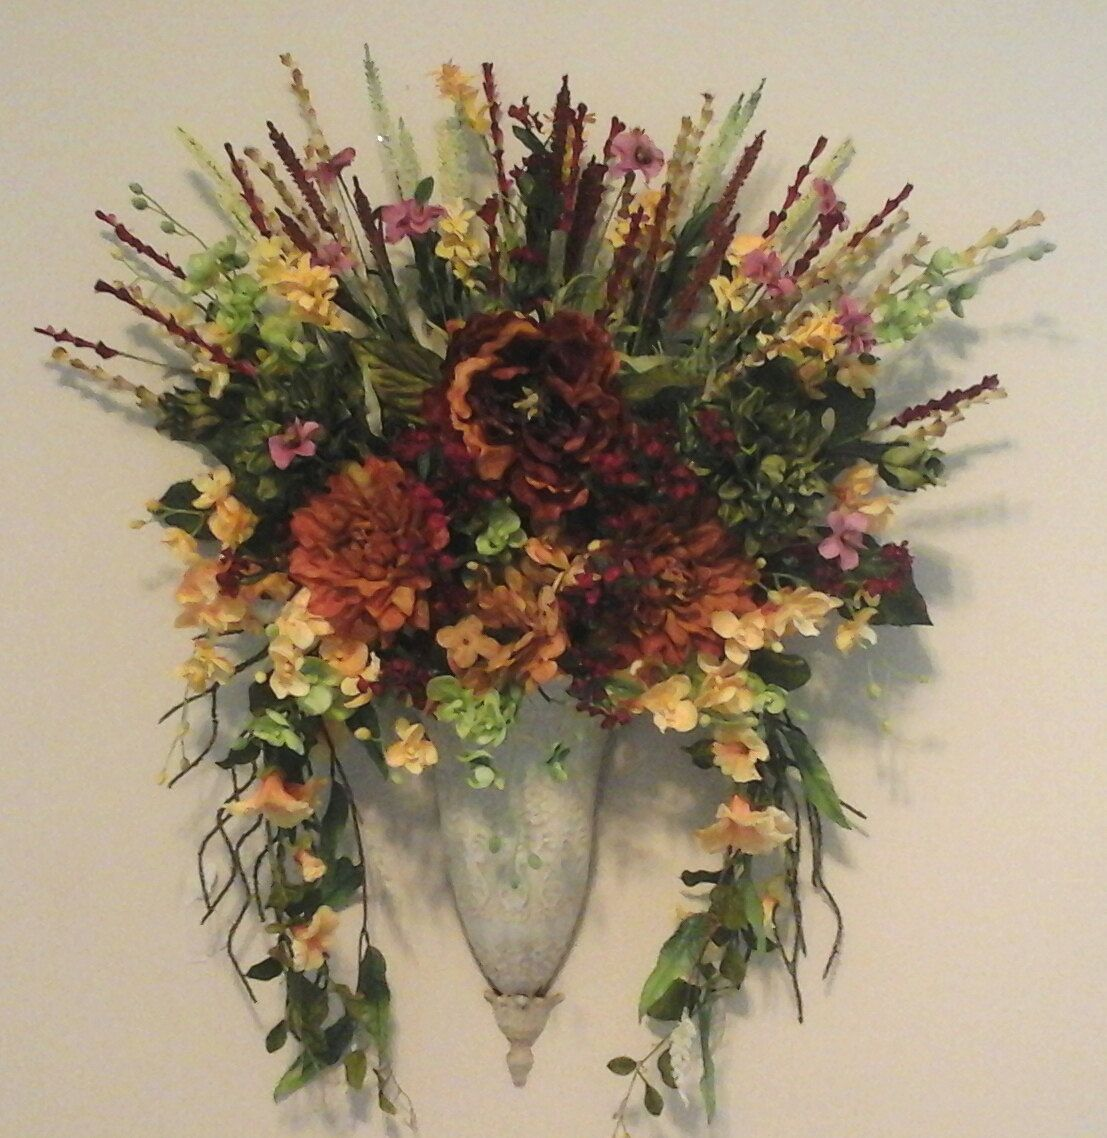 Pin on Wreaths,Swags Wall Planter Sconce on Pocket Wall Sconce For Flowers id=42026